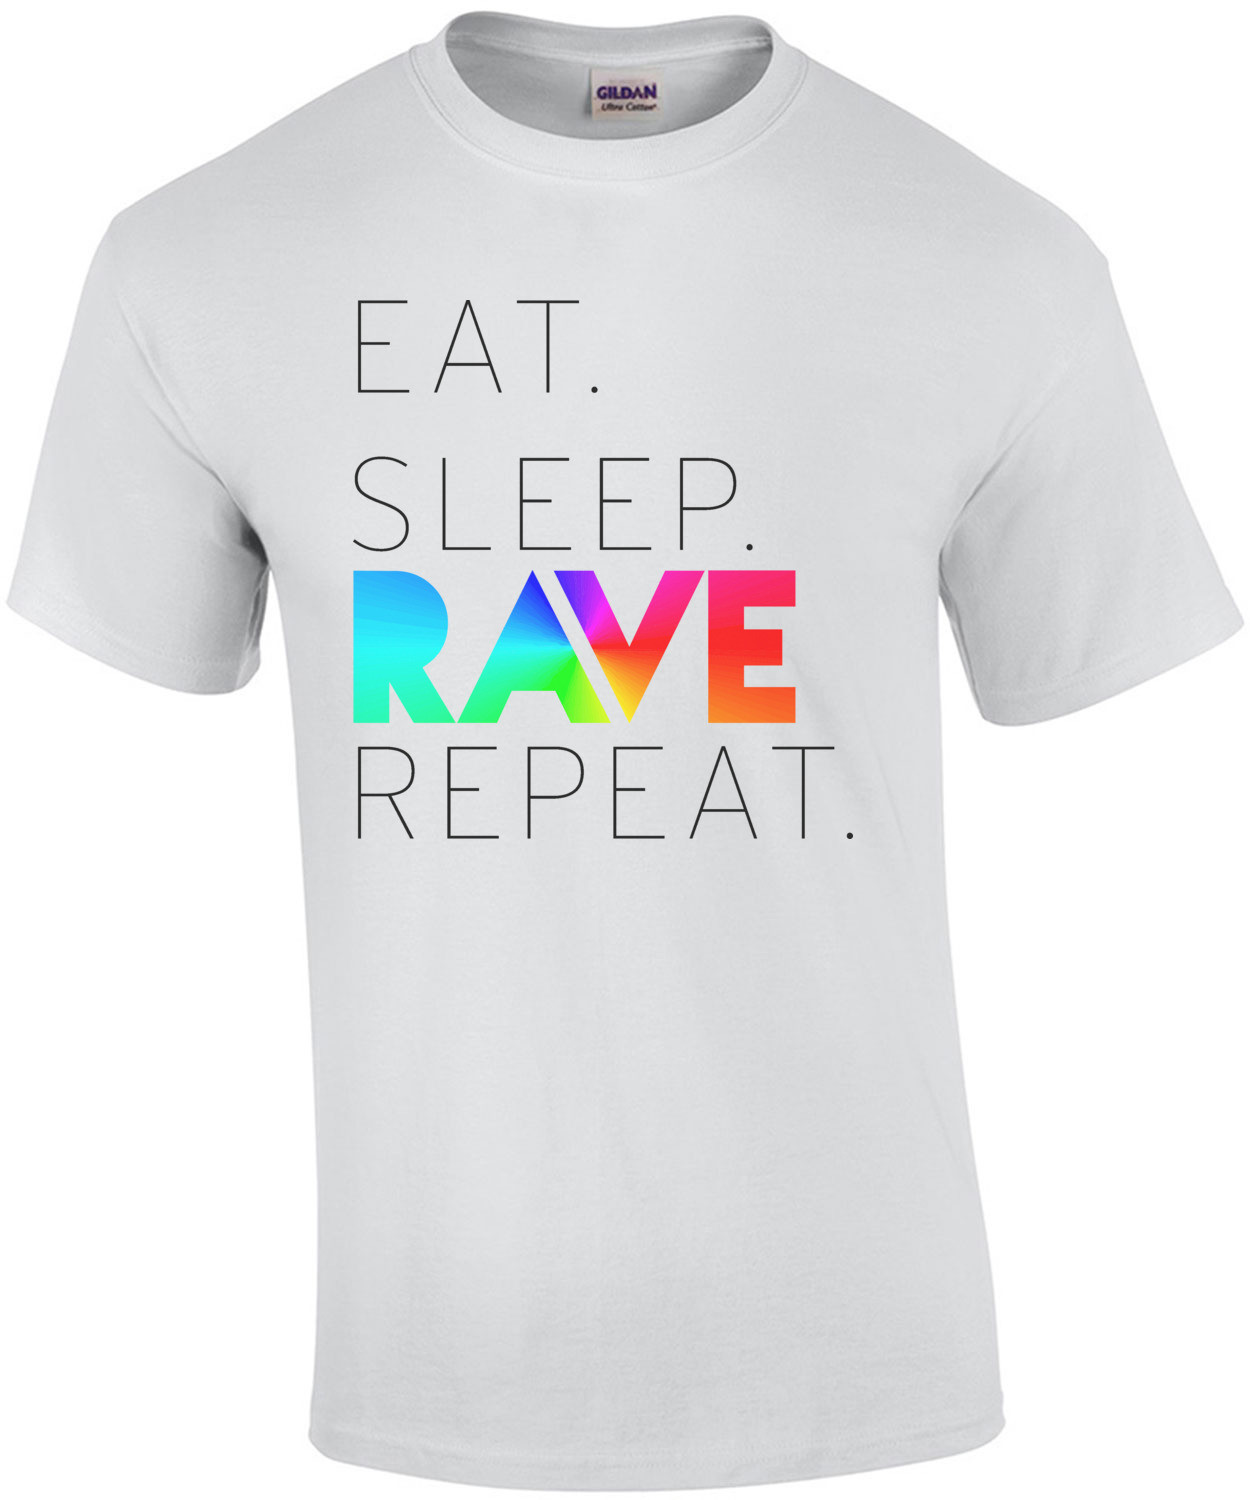 Eat. Sleep. Rave. Repeat. Funny T-Shirt